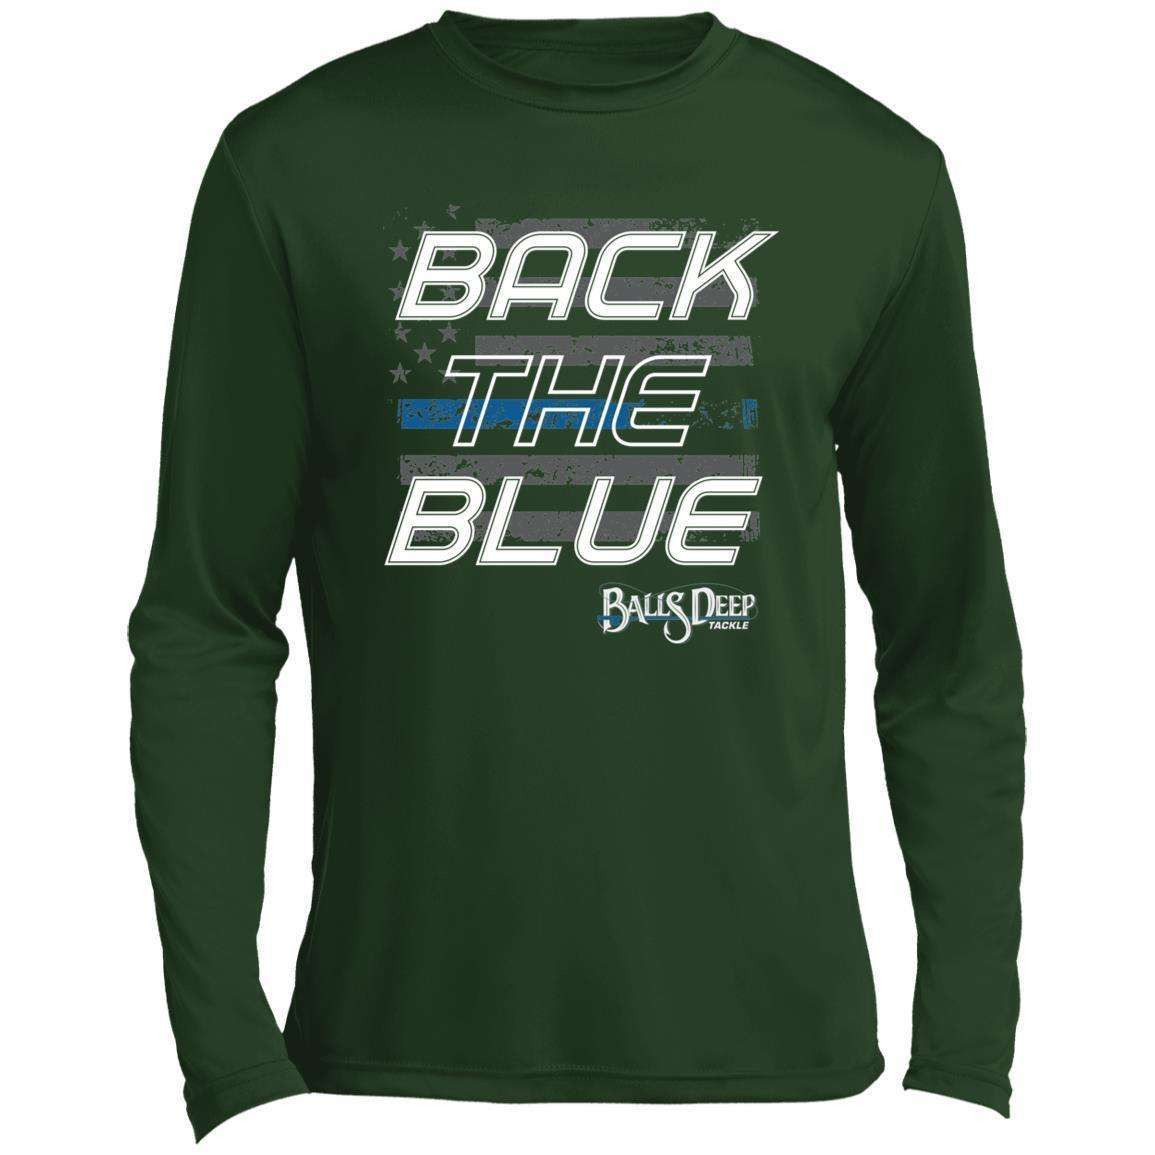 Back the Blue Performance Long Sleeve